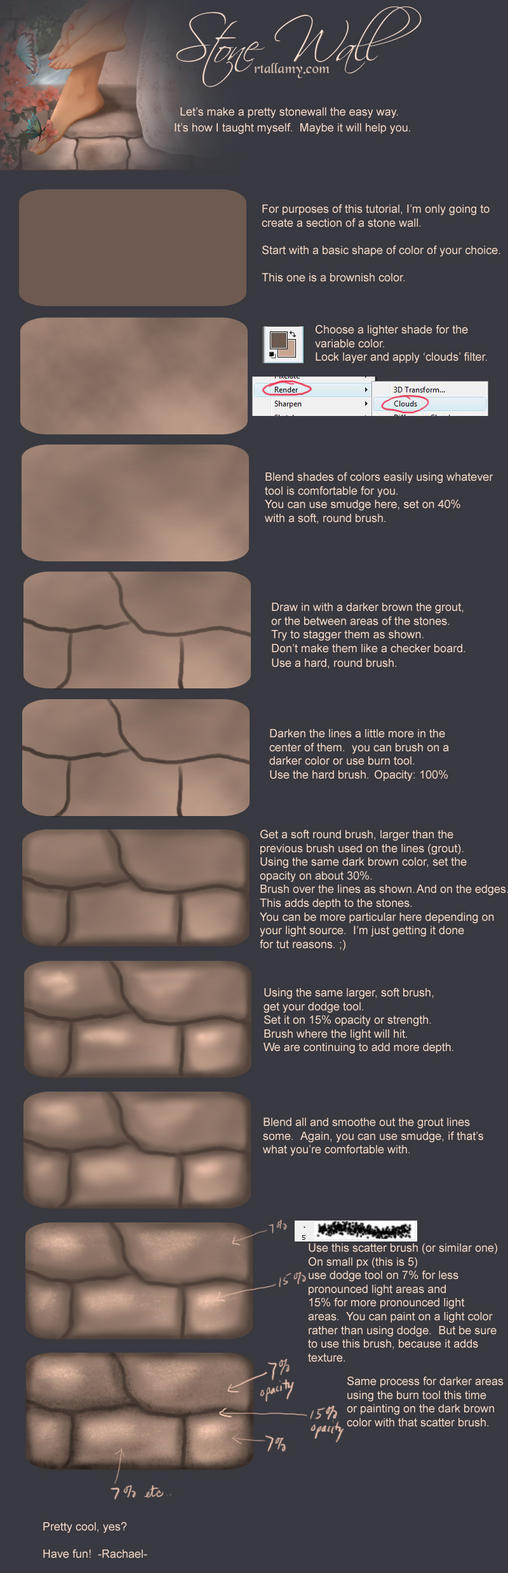 Stone Wall tutorial by Rach-Resources